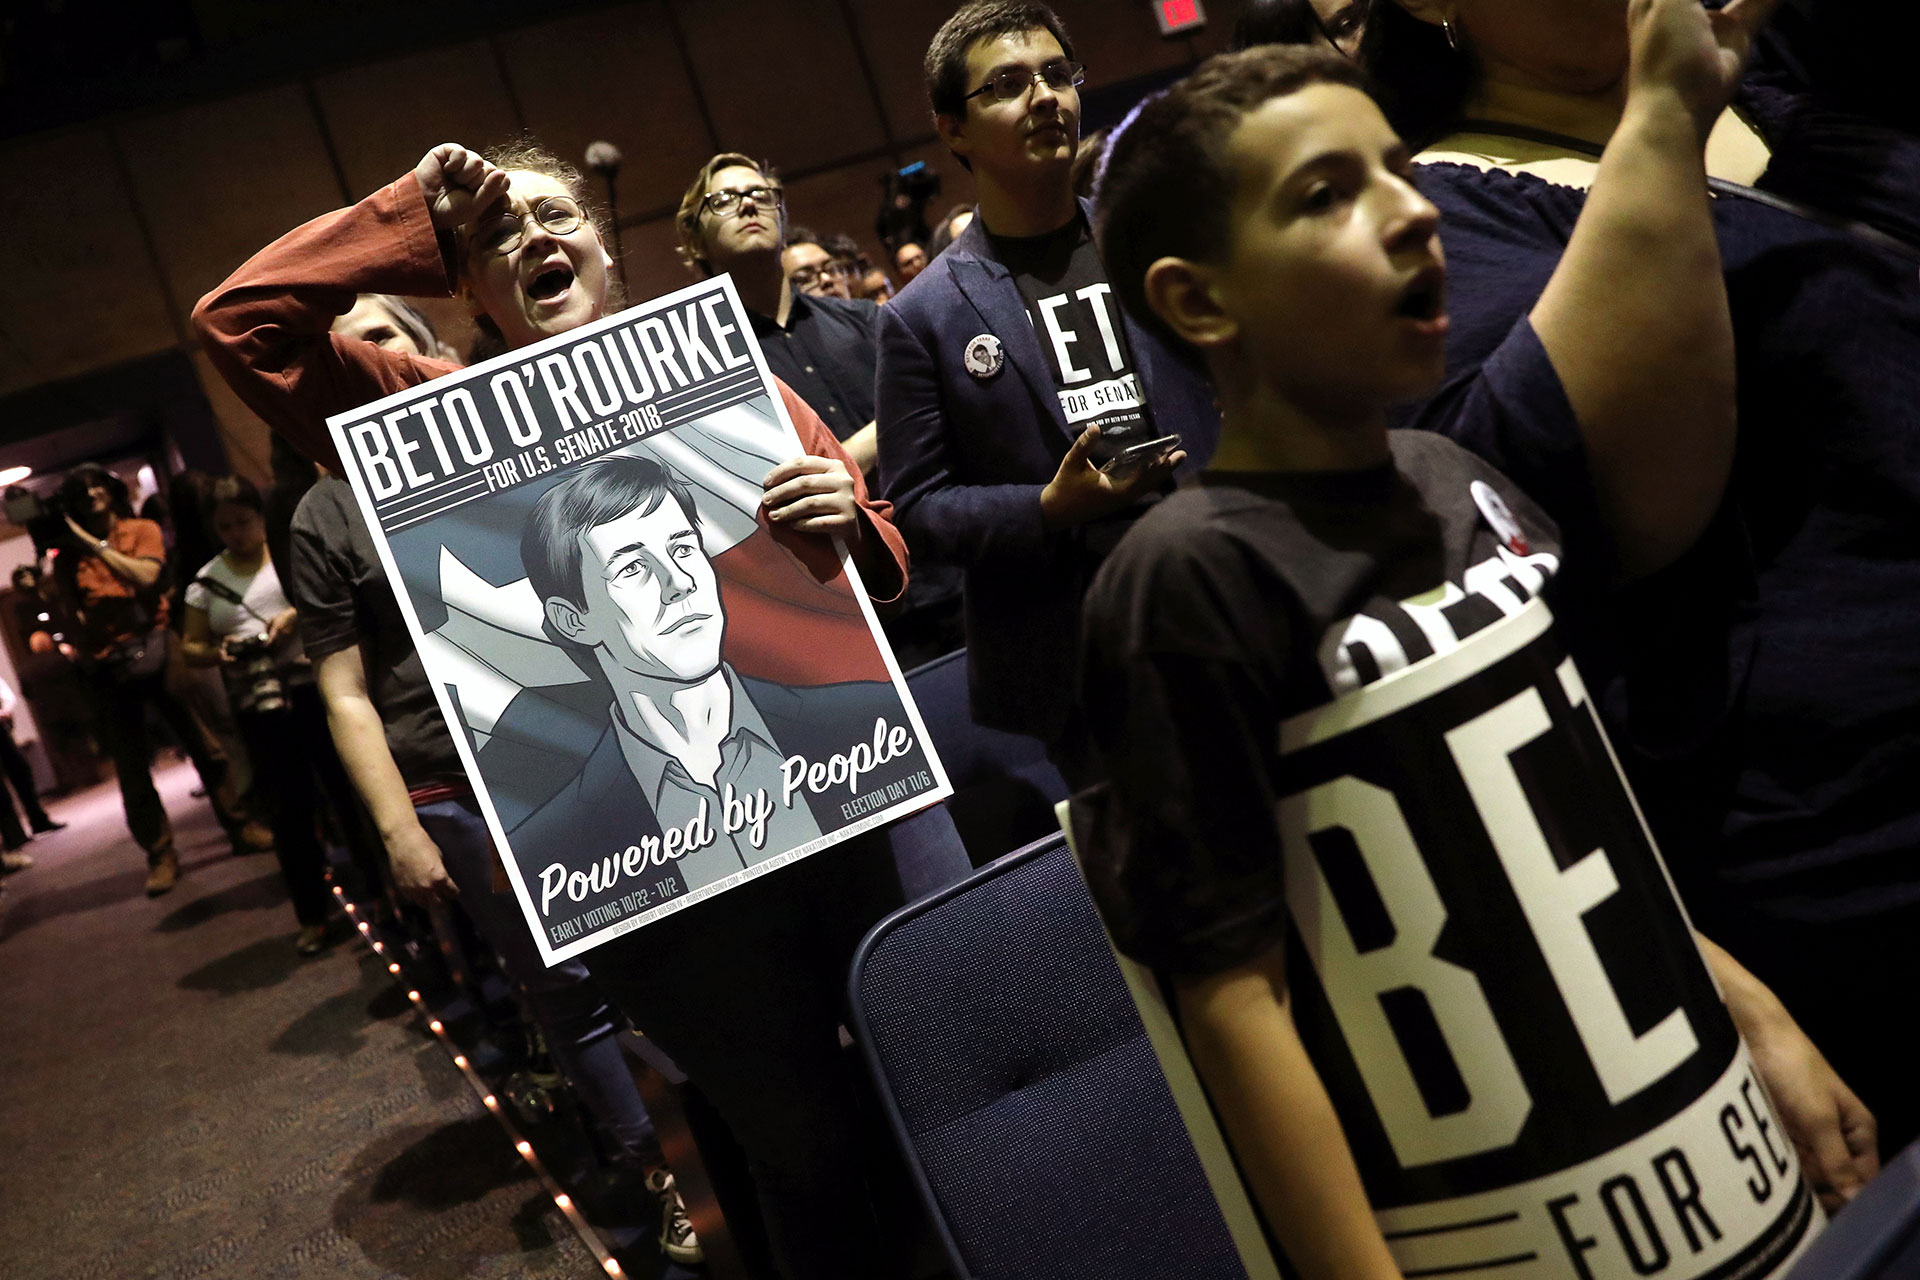 a4a070e39 O'Rourke attend a campaign rally in El Paso, Texas, on the last day before  last fall's midterm elections. REUTERS/Mike Segar/File Photo